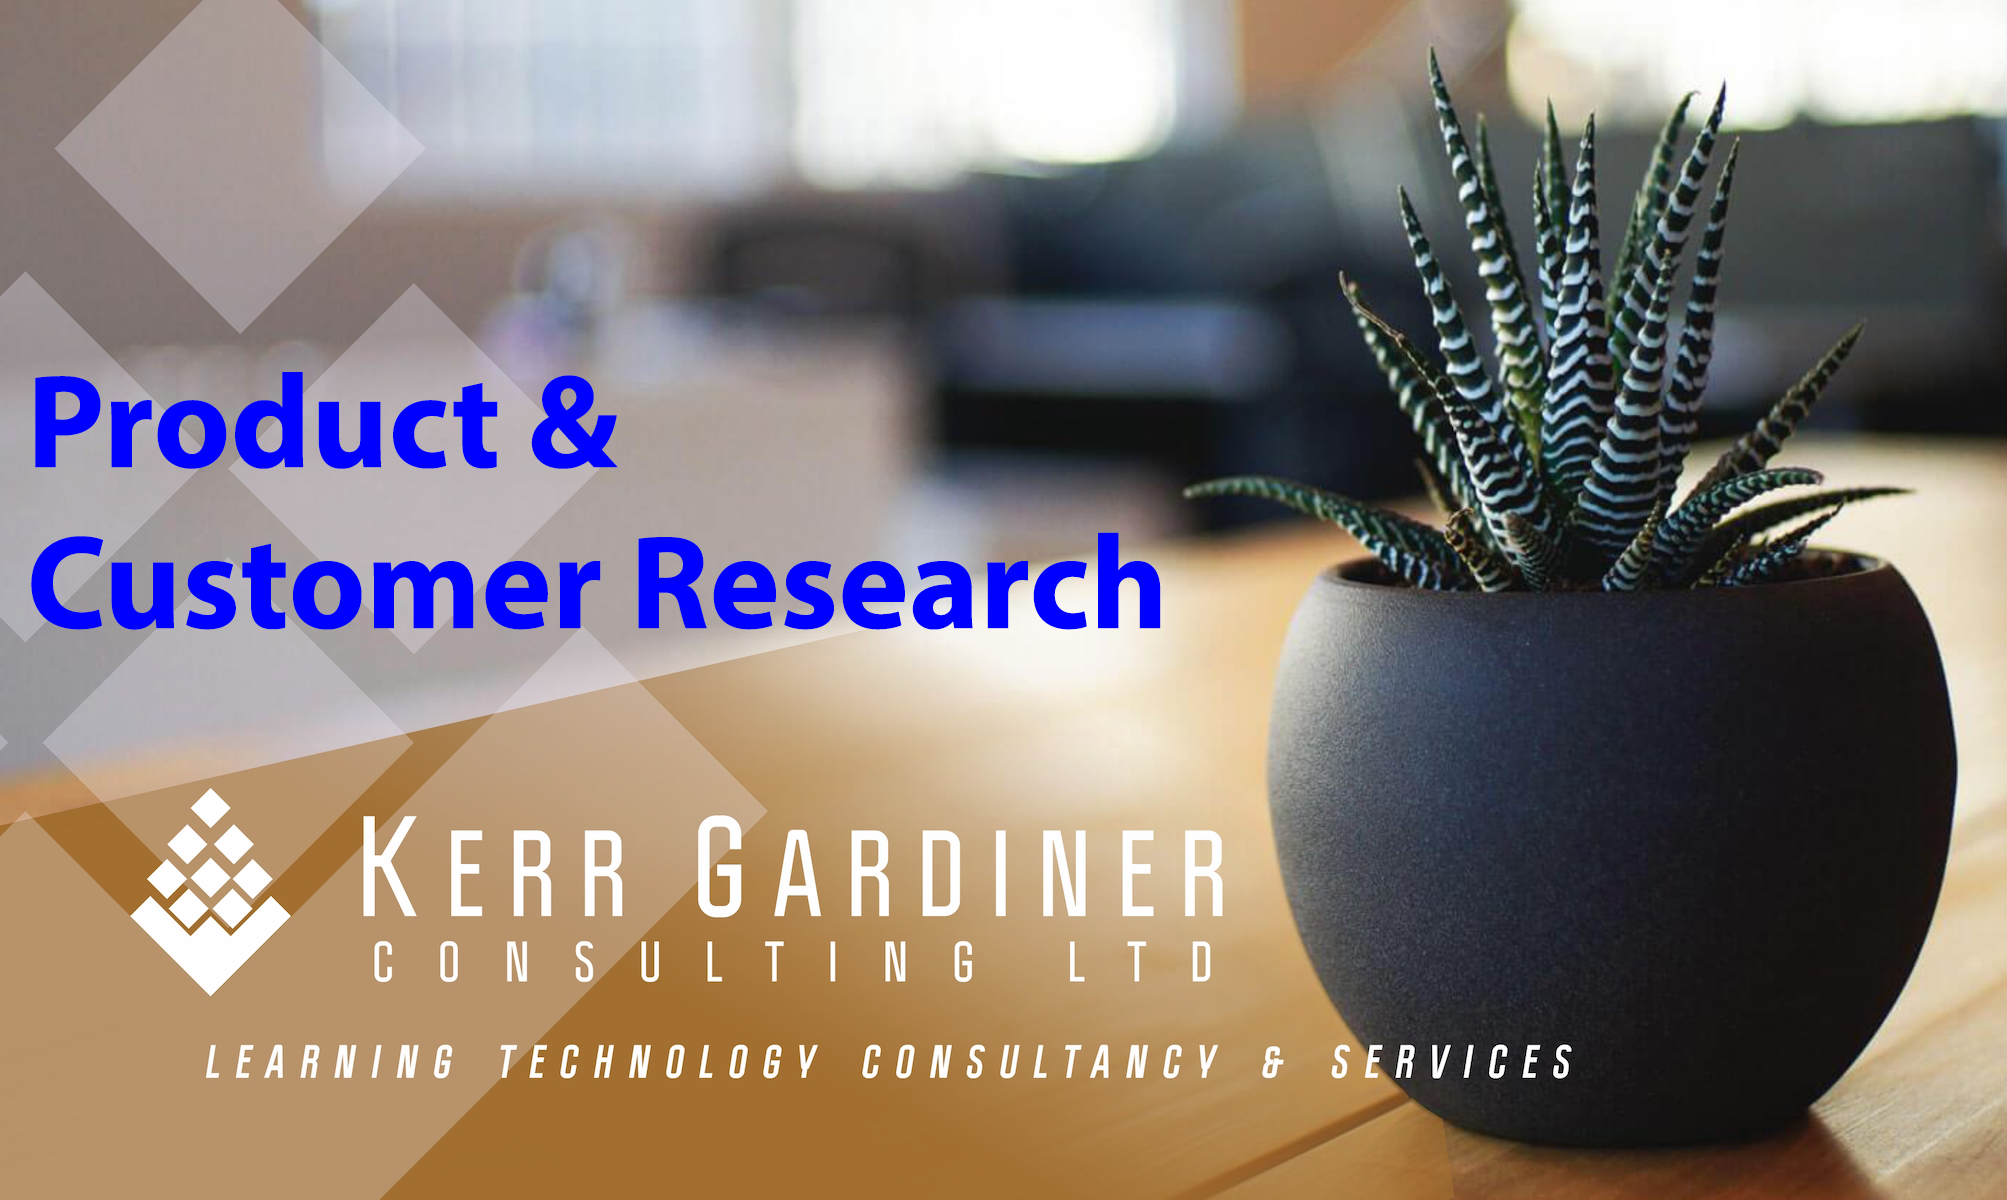 Product and customer research